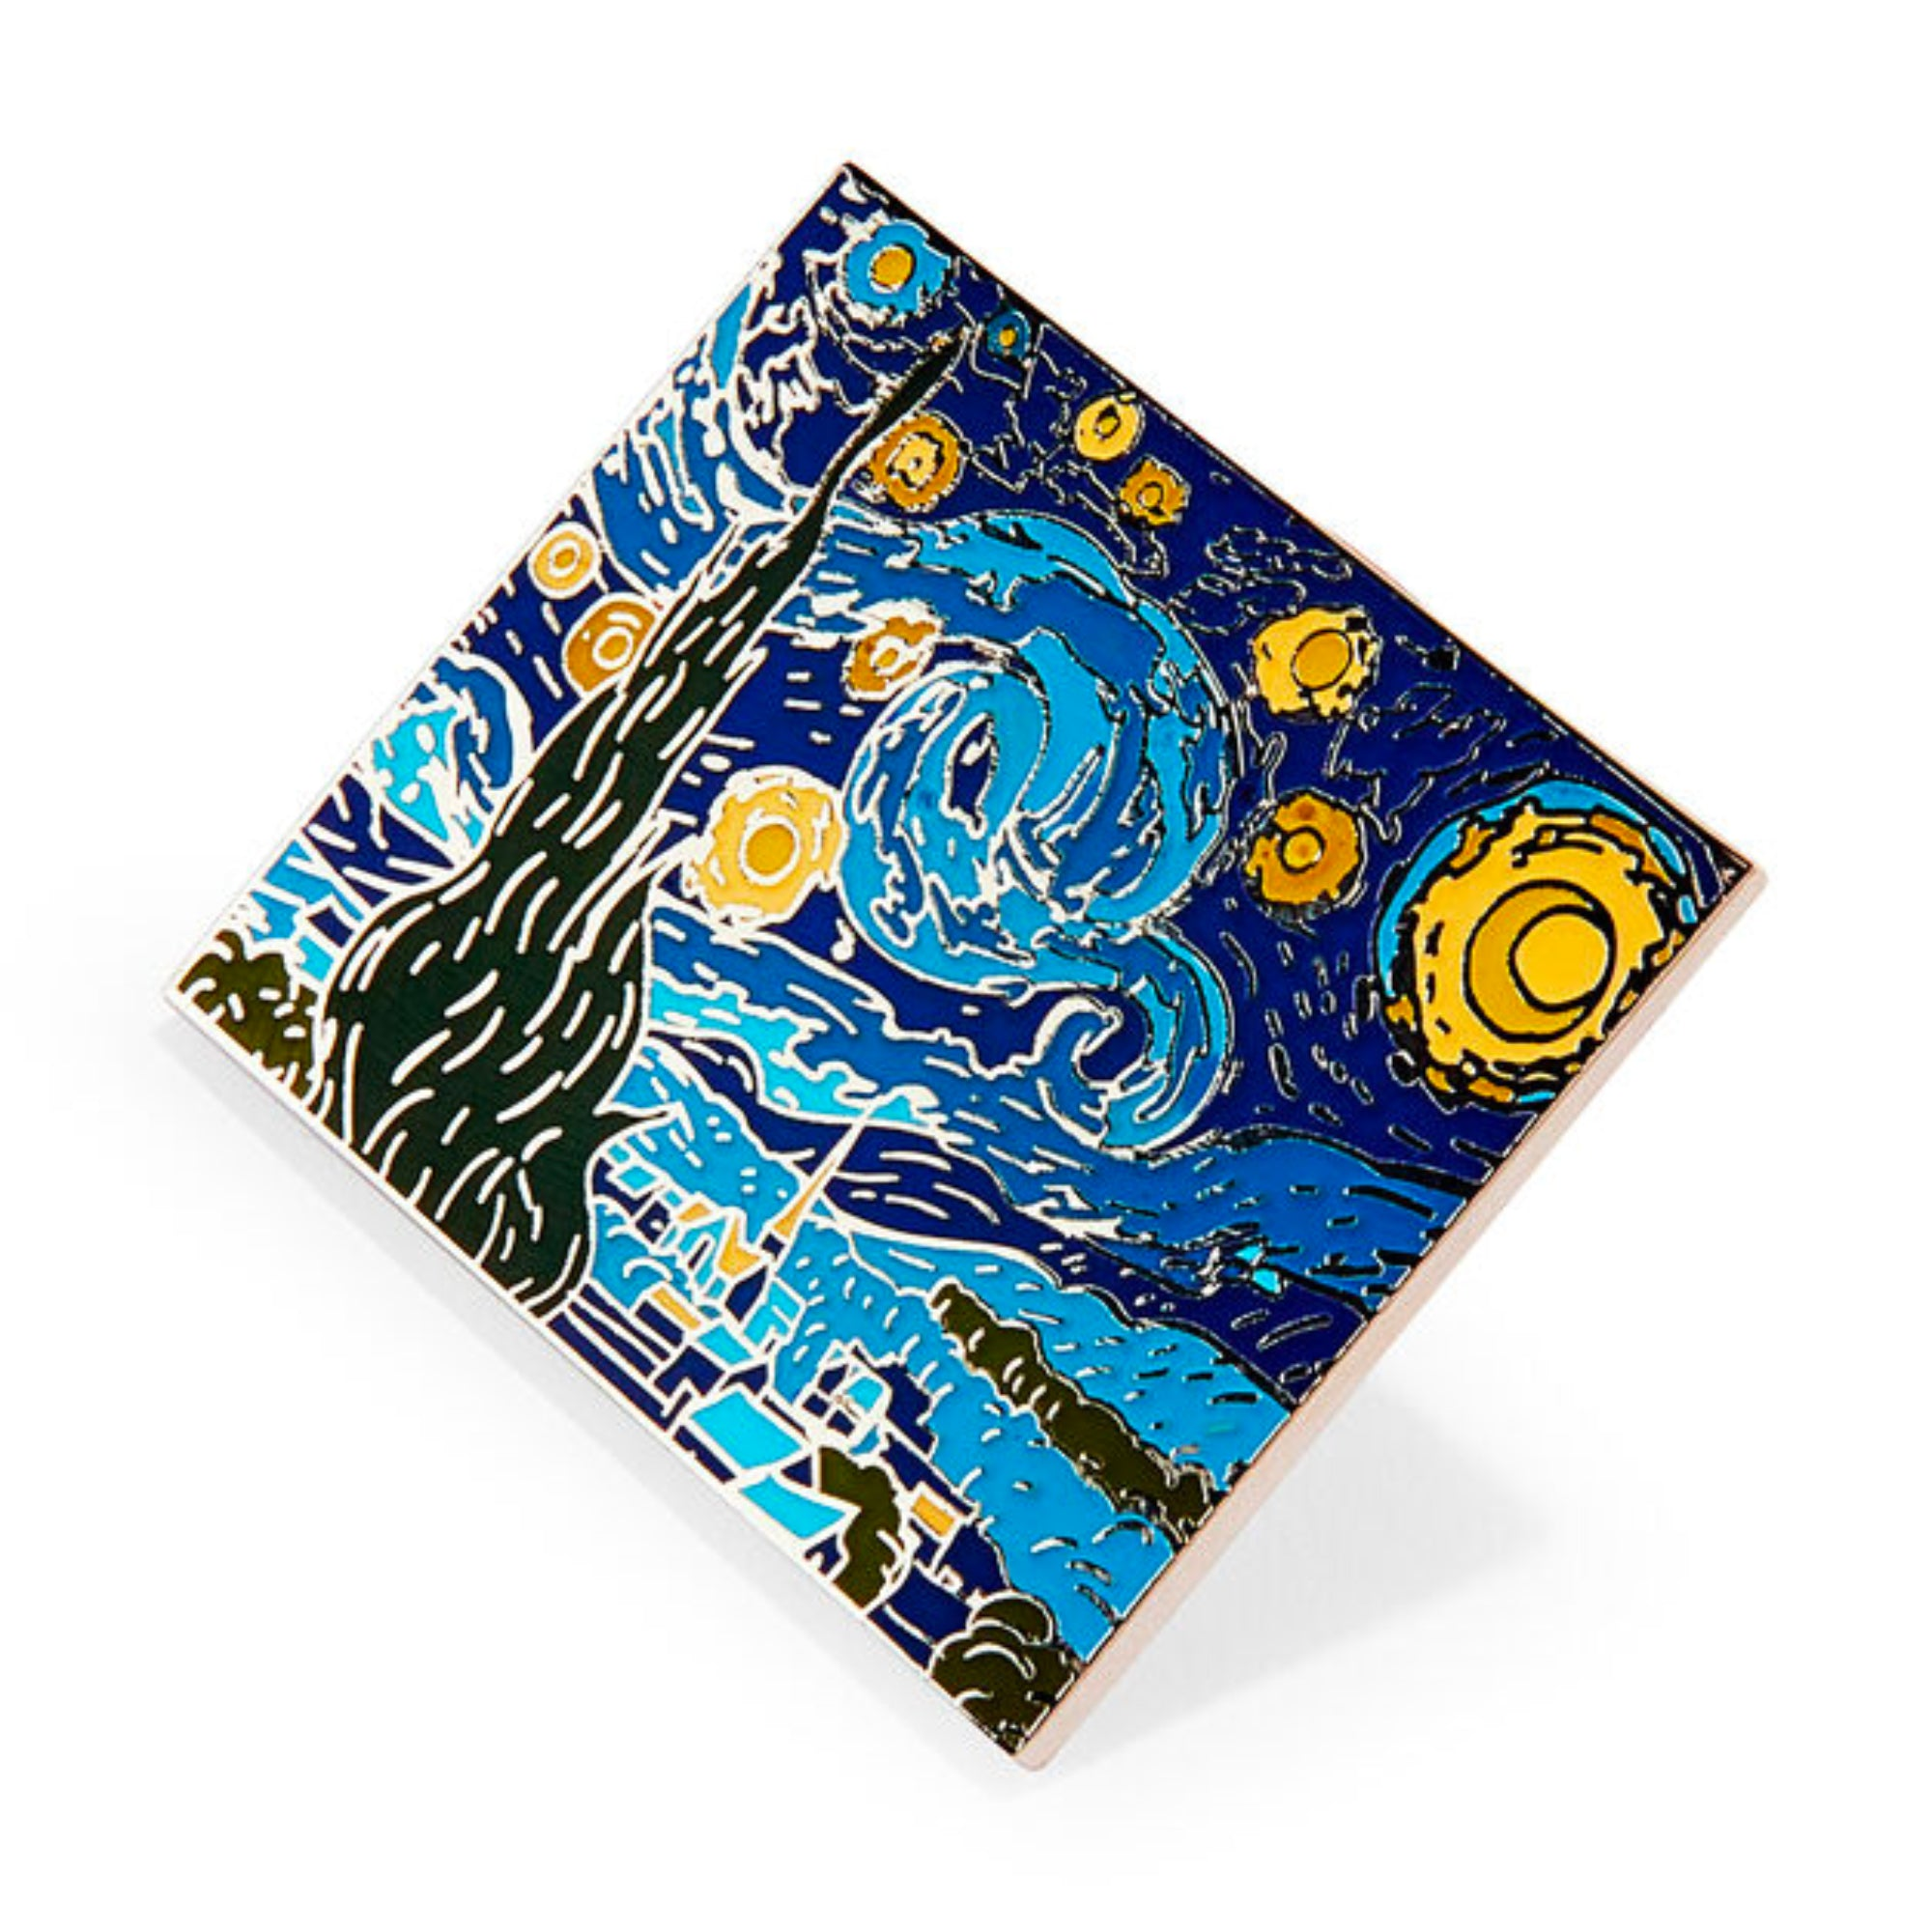 MoMA Vincent van Gogh: Starry Night Enamel Pin